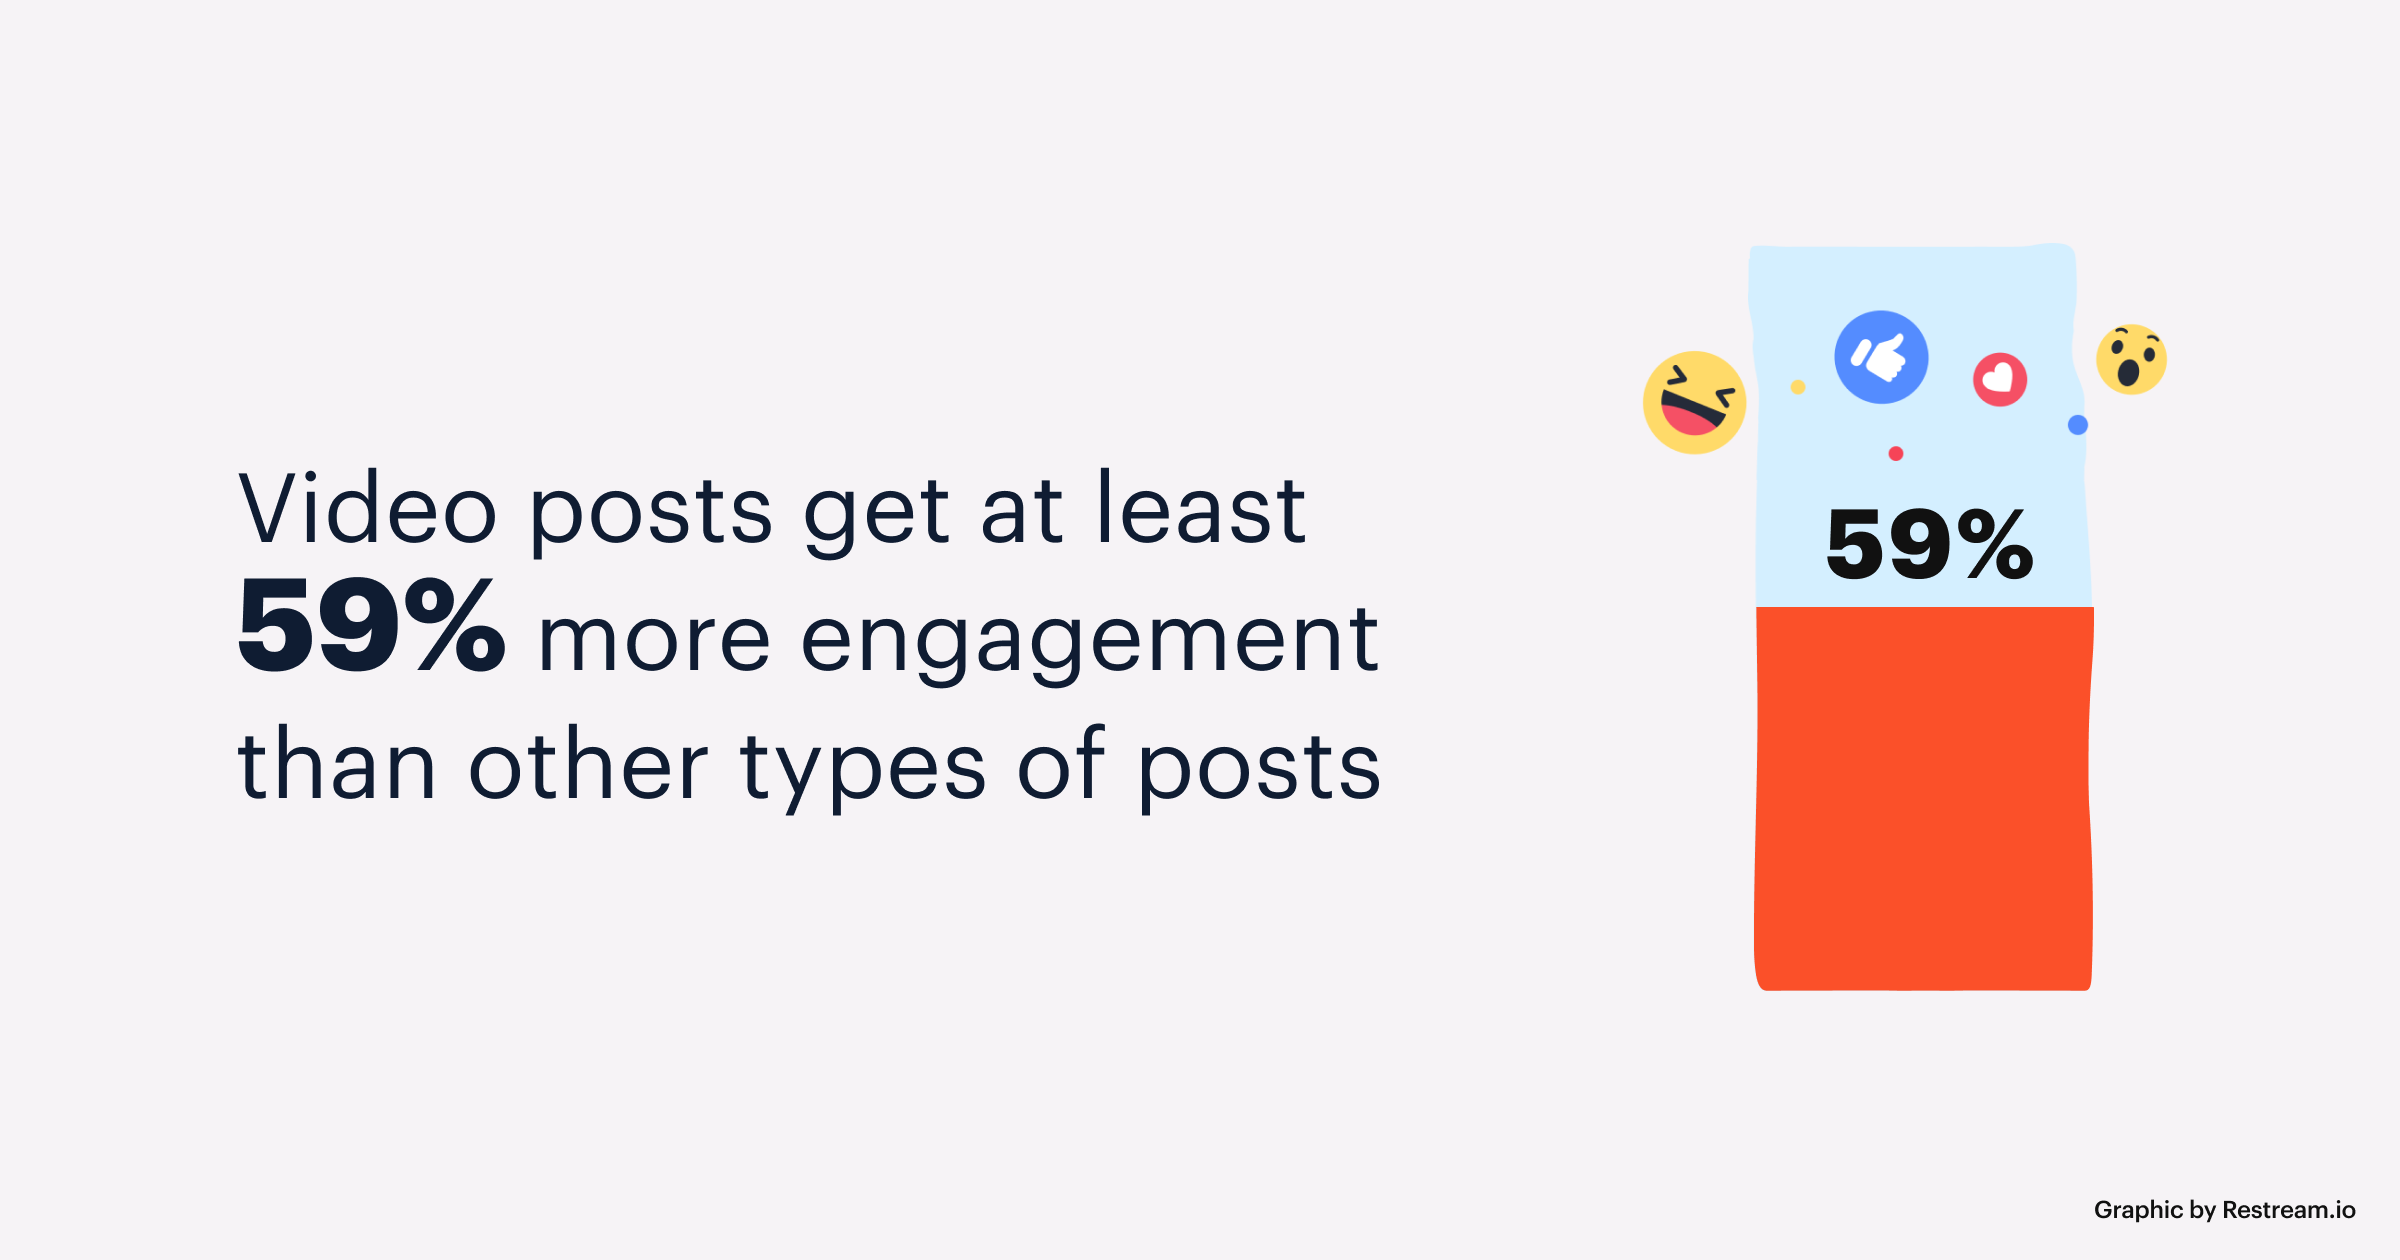 Video posts get at least 59% more engagement than other types of posts